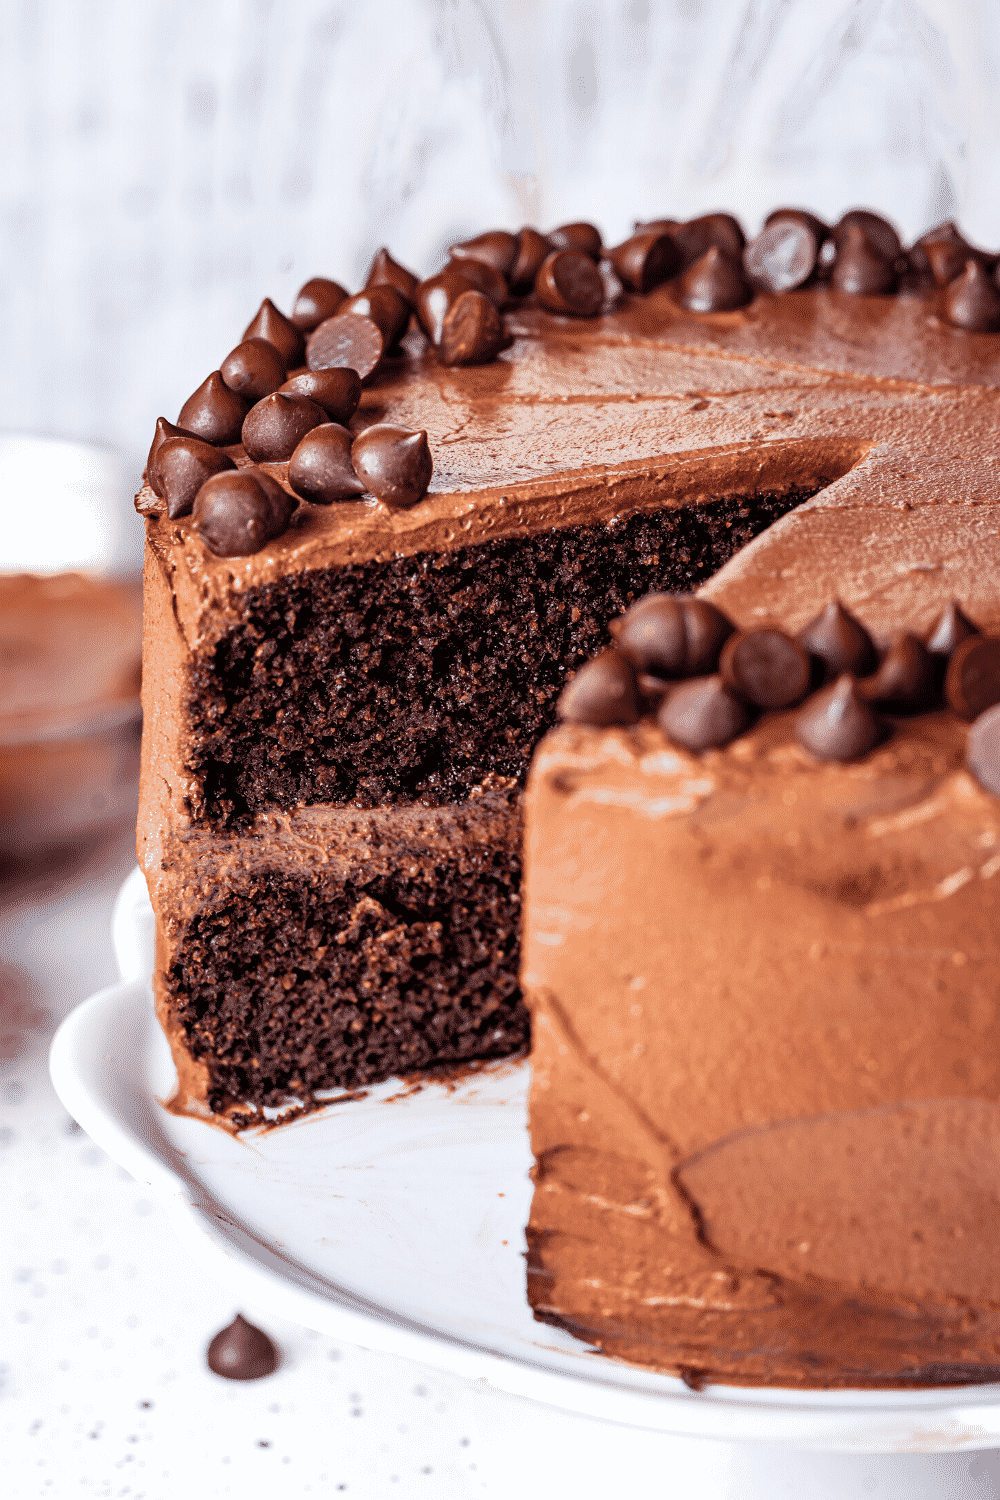 A chocolate cake and a white serving dish. There is one slice missing from the front of the chocolate cake.